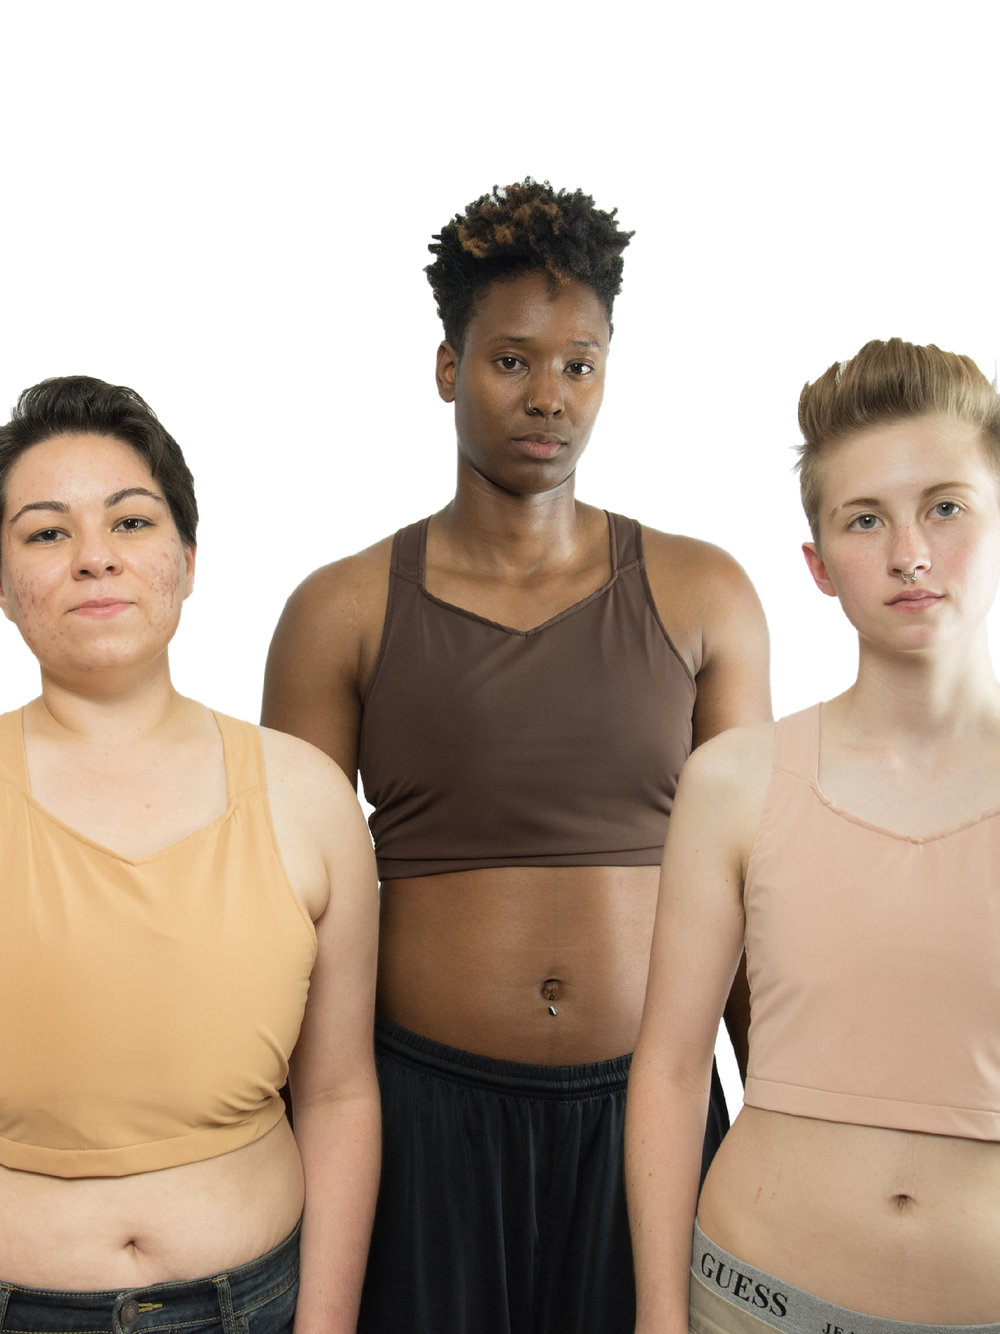 """FLAVNT Streetwear - FLAVNT Streetwear is a trans-owned brand that popped up a few years back in Austin, Texas. They sell LGBTQ+ shirts and merch, and have a line of Bareskin binders designed to match closely to a variety of skin tones. They have five colors now in a single cropped style, from a peachy """"Rose"""" (right) to a dark """"Umber"""" (center) all priced at $50.The material is soft and comfortable, and we've heard the straps don't cut into your shoulders like other brands might. Their fabric does make an audible crinkling sound when you move around, but it's still a fairly discreet binder. Plus, the material is safe for swimming.The only downside is that their sizing is limited in certain colors. When we searched earlier (late 2018/early 2019) there were no Rose available at all, and sizing was super limited in all colors except the two darkest."""